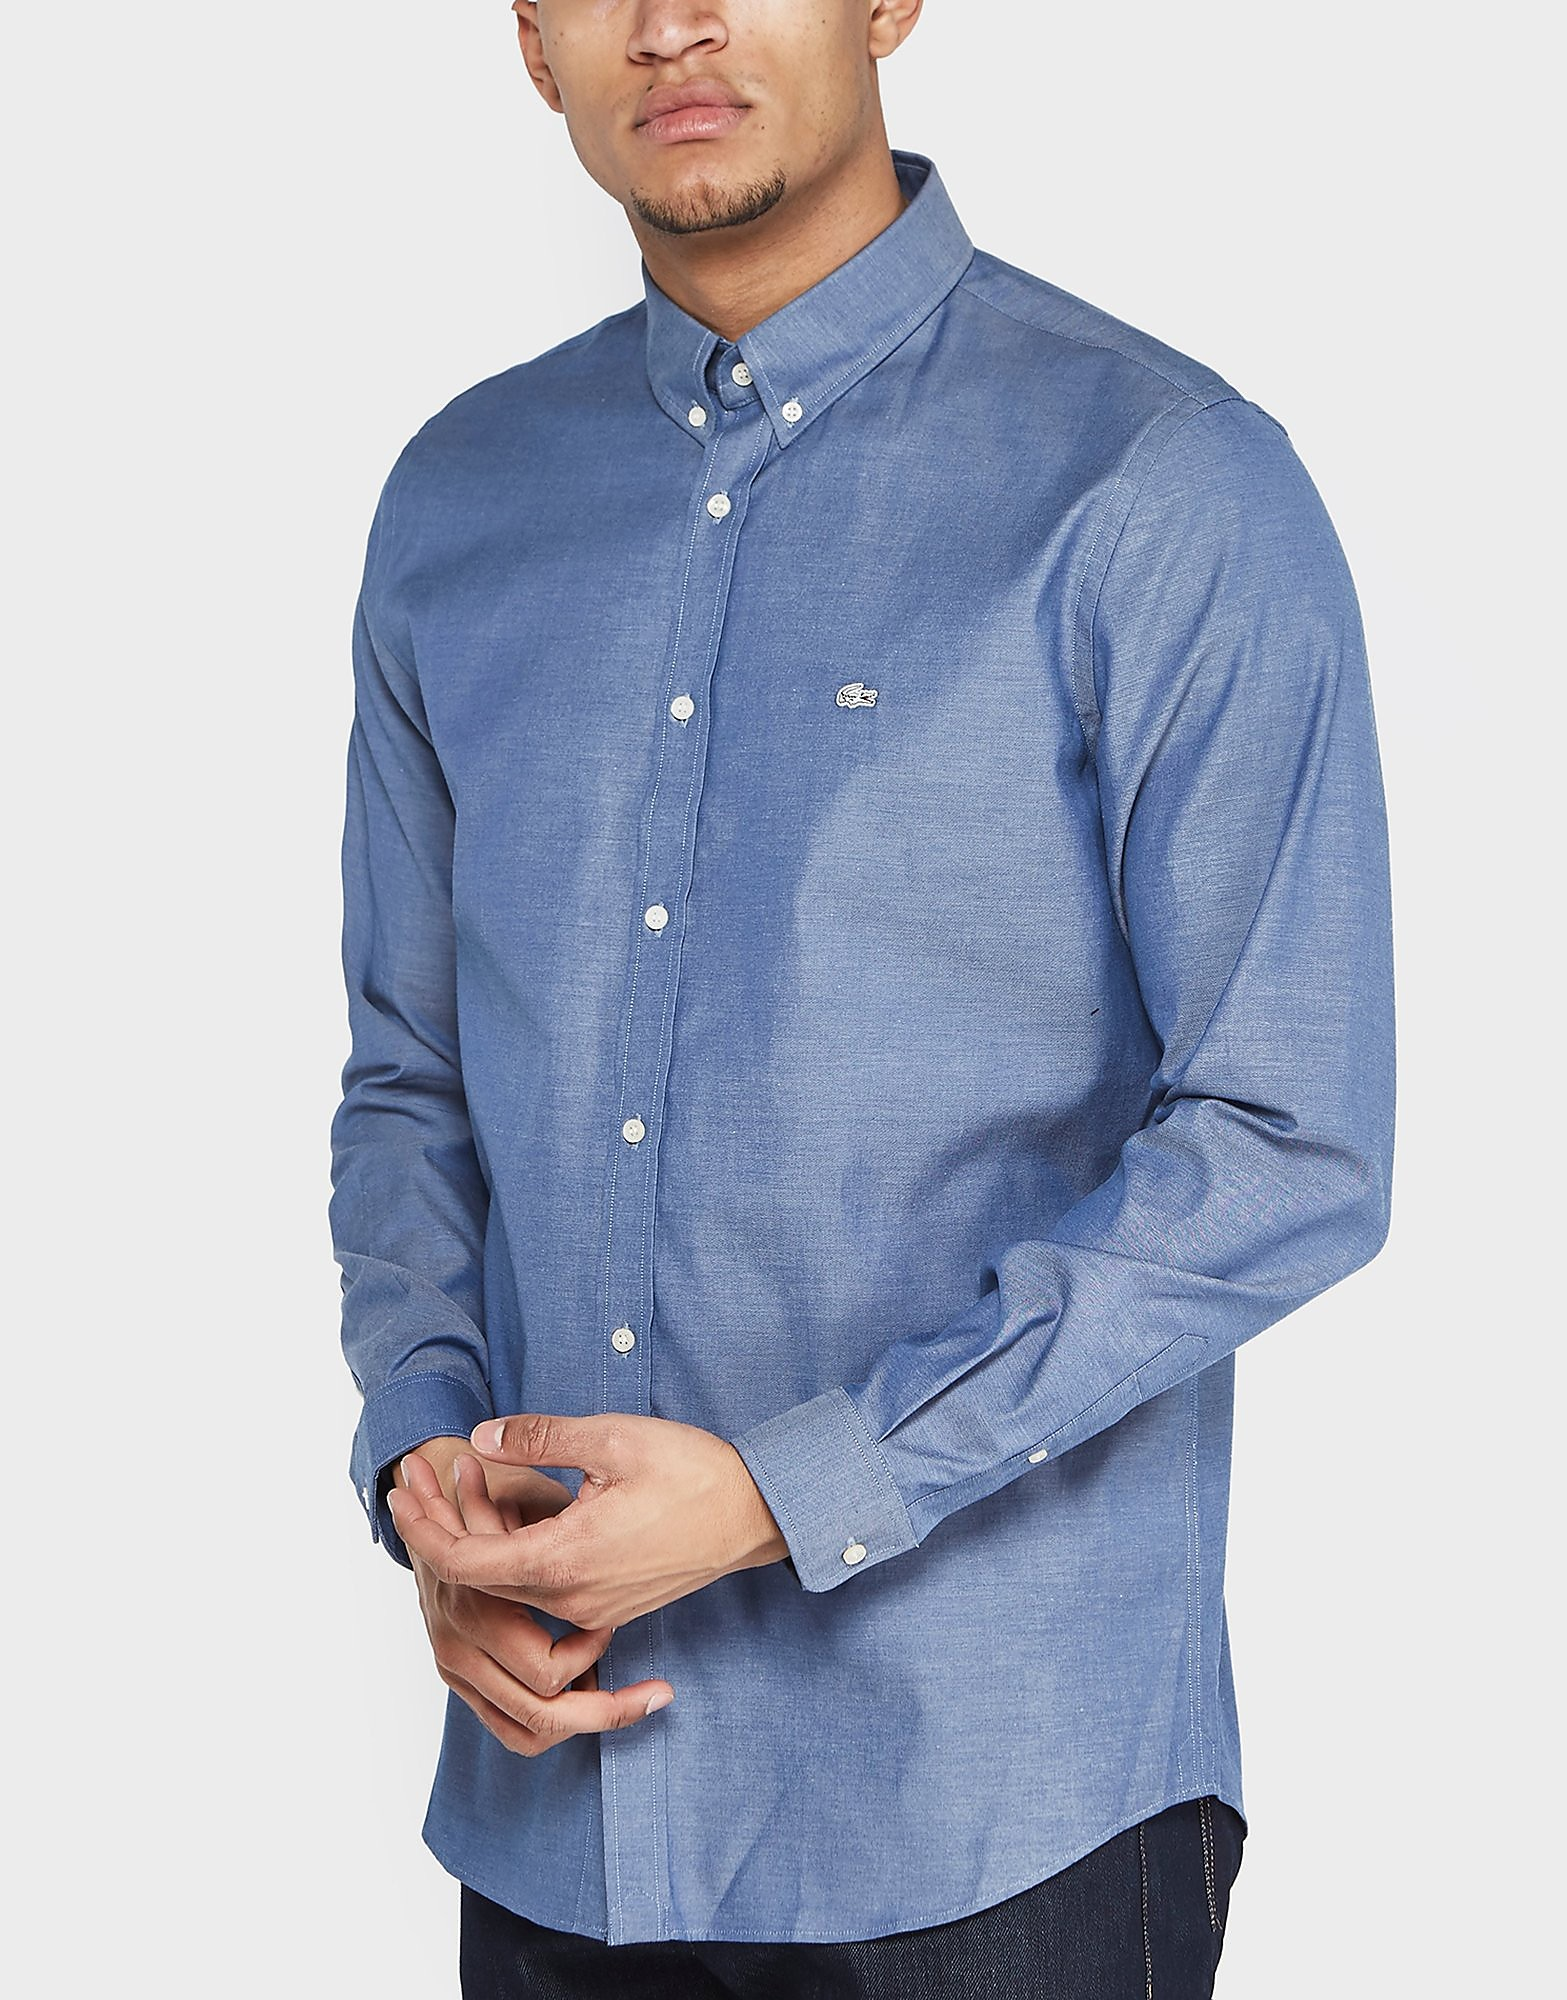 Lacoste City Chambray Short Sleeve Shirt